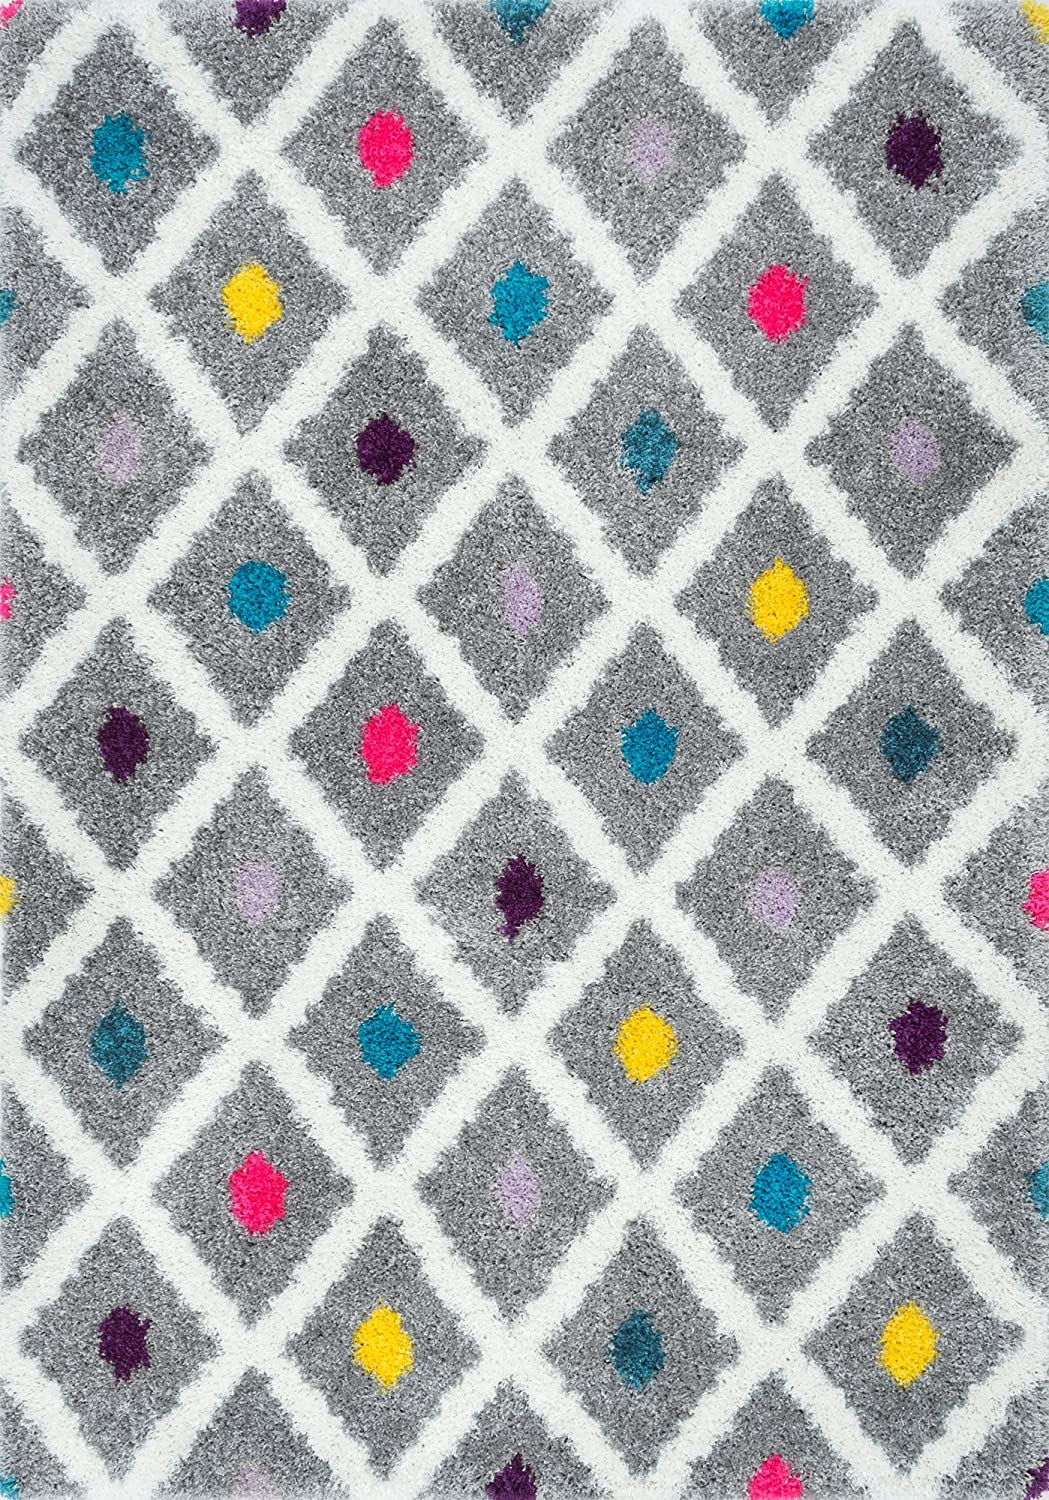 Grey rug with diagonal white lines and colorful dots.